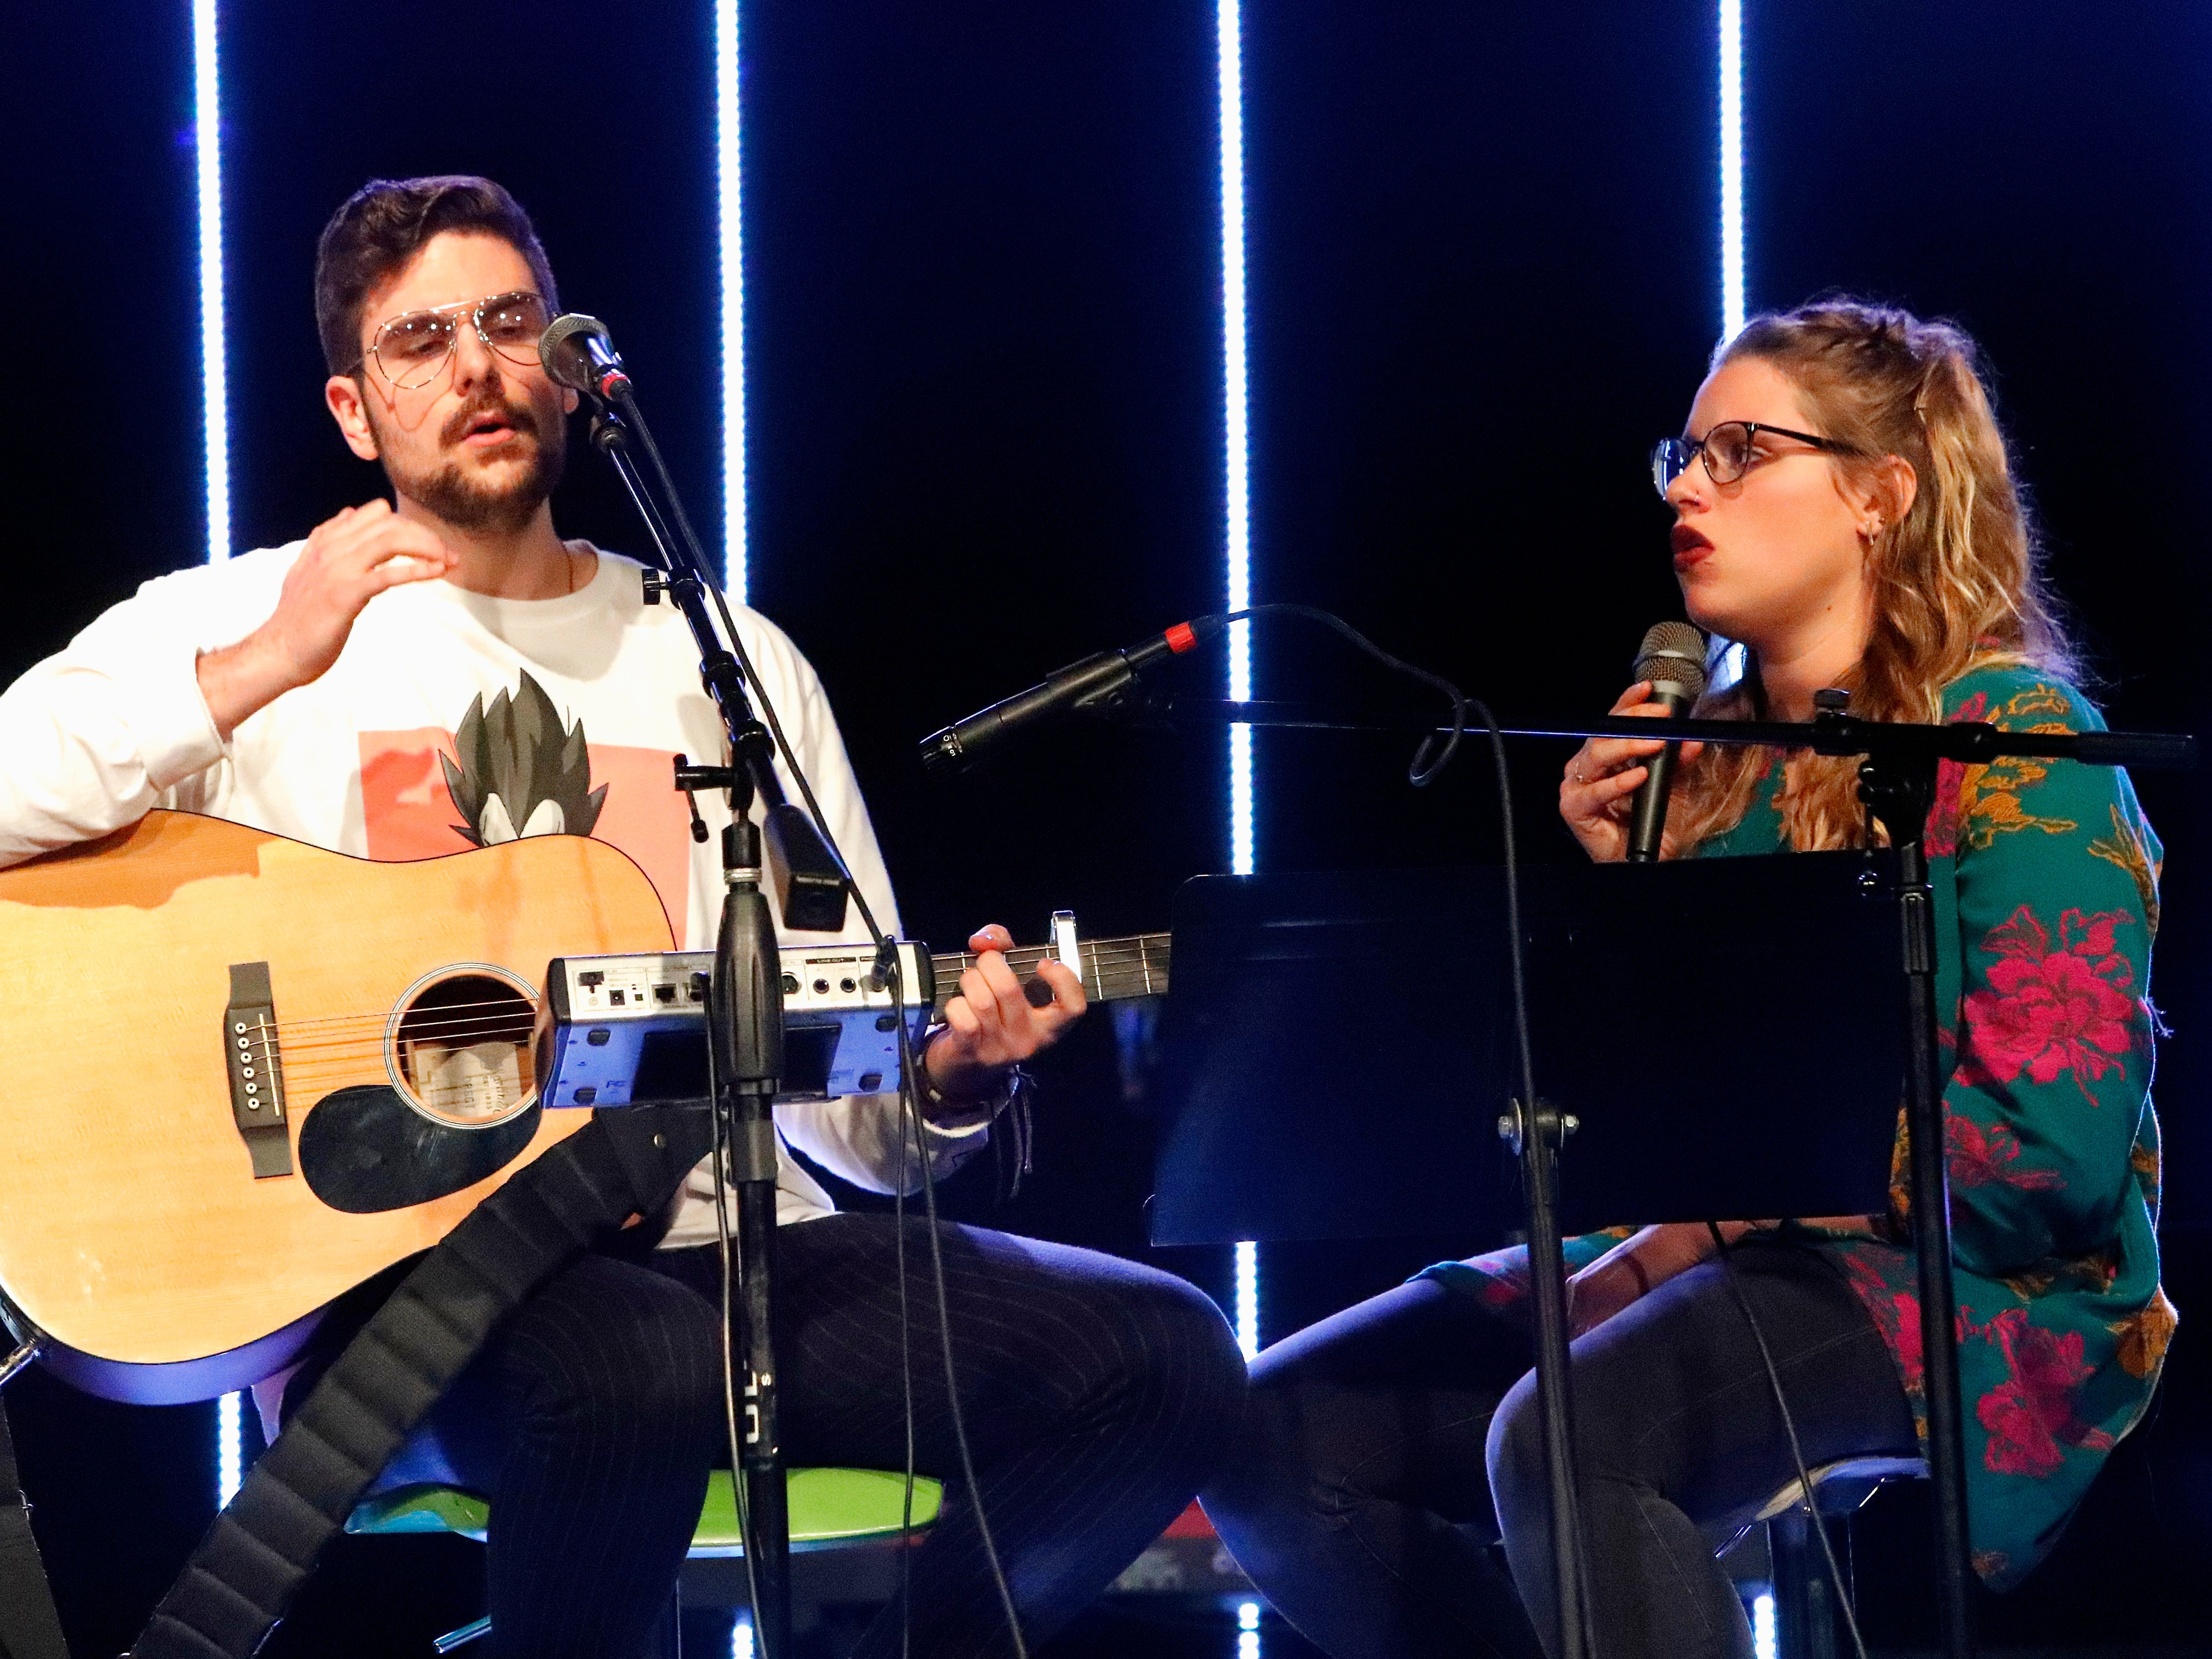 International students from Bethel Church's School of Supernatural Ministry present the Concert of the Nations on Thursday, March 14, 2019, in Redding. Pictured are Mathieu Rossignol (Belgium) and Elizabeth Plante (Québec, Canada), representing French-speaking countries.